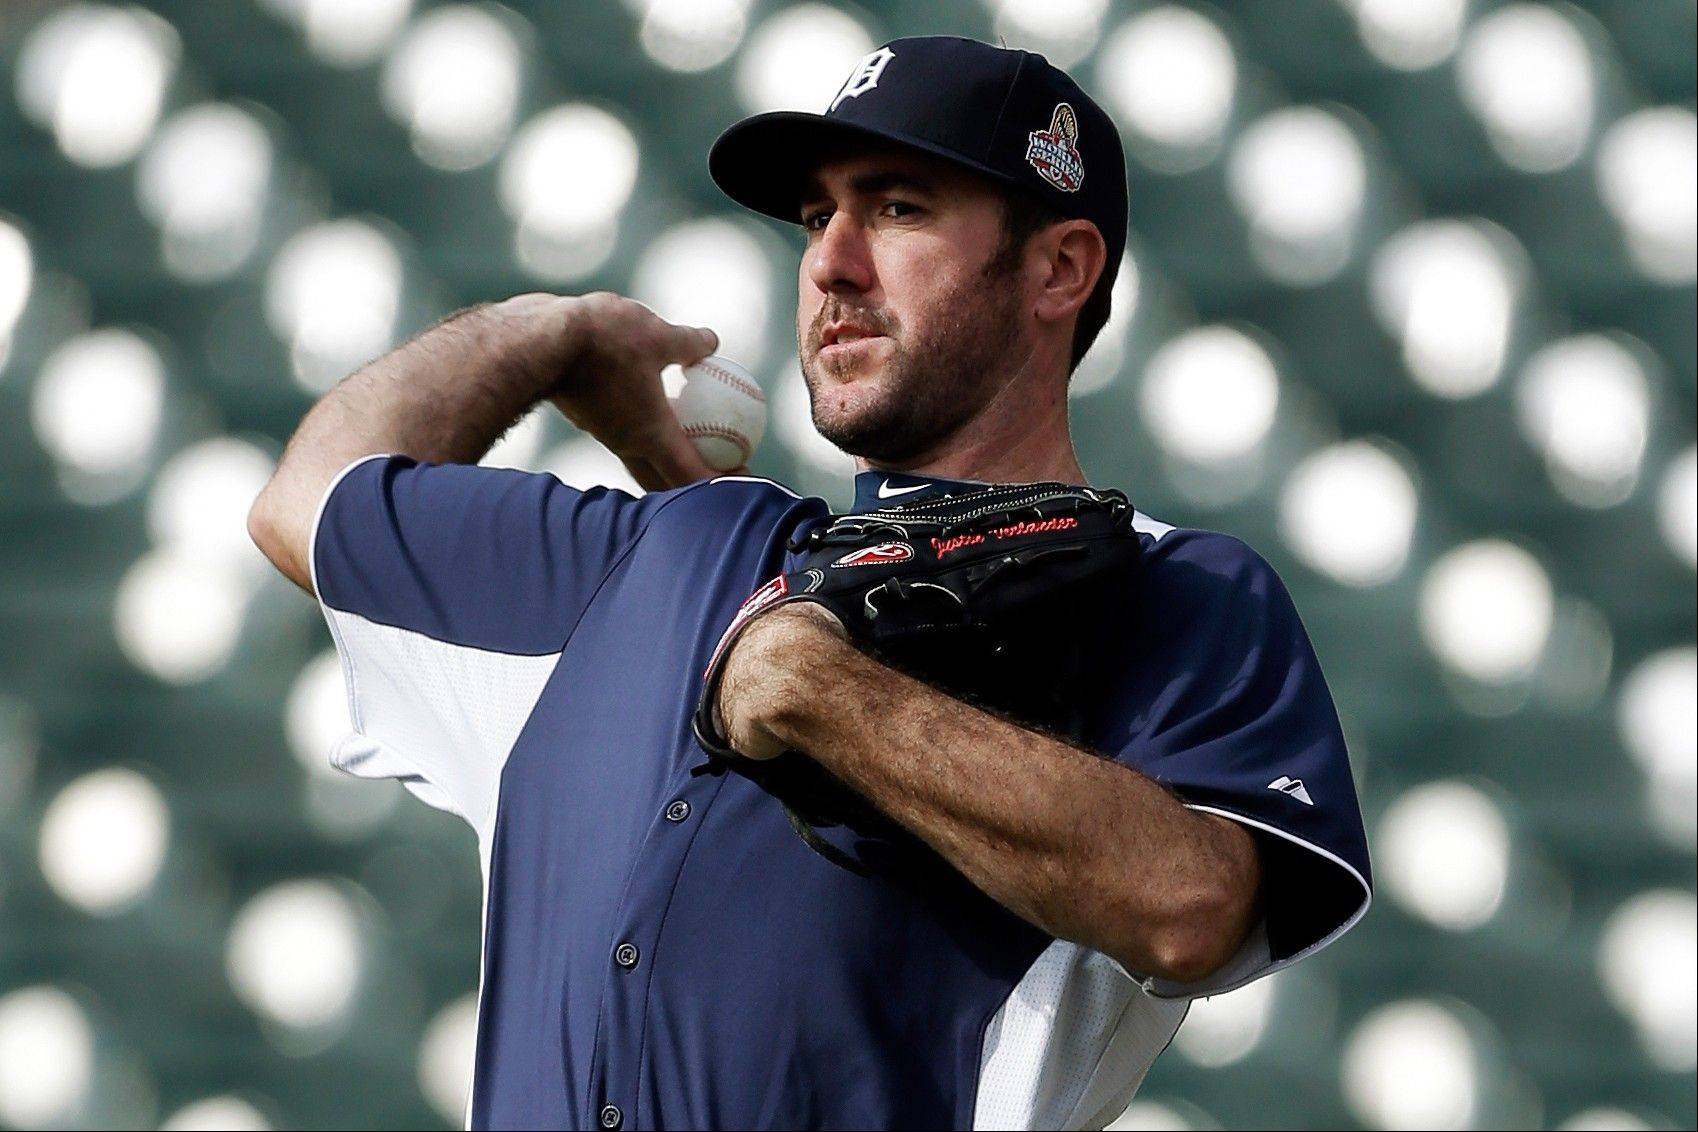 Detroit Tigers pitcher Justin Verlander throws during a workout Monday at Comerica Park in Detroit. He'll start Game 1 of the World Series against San Francisco.